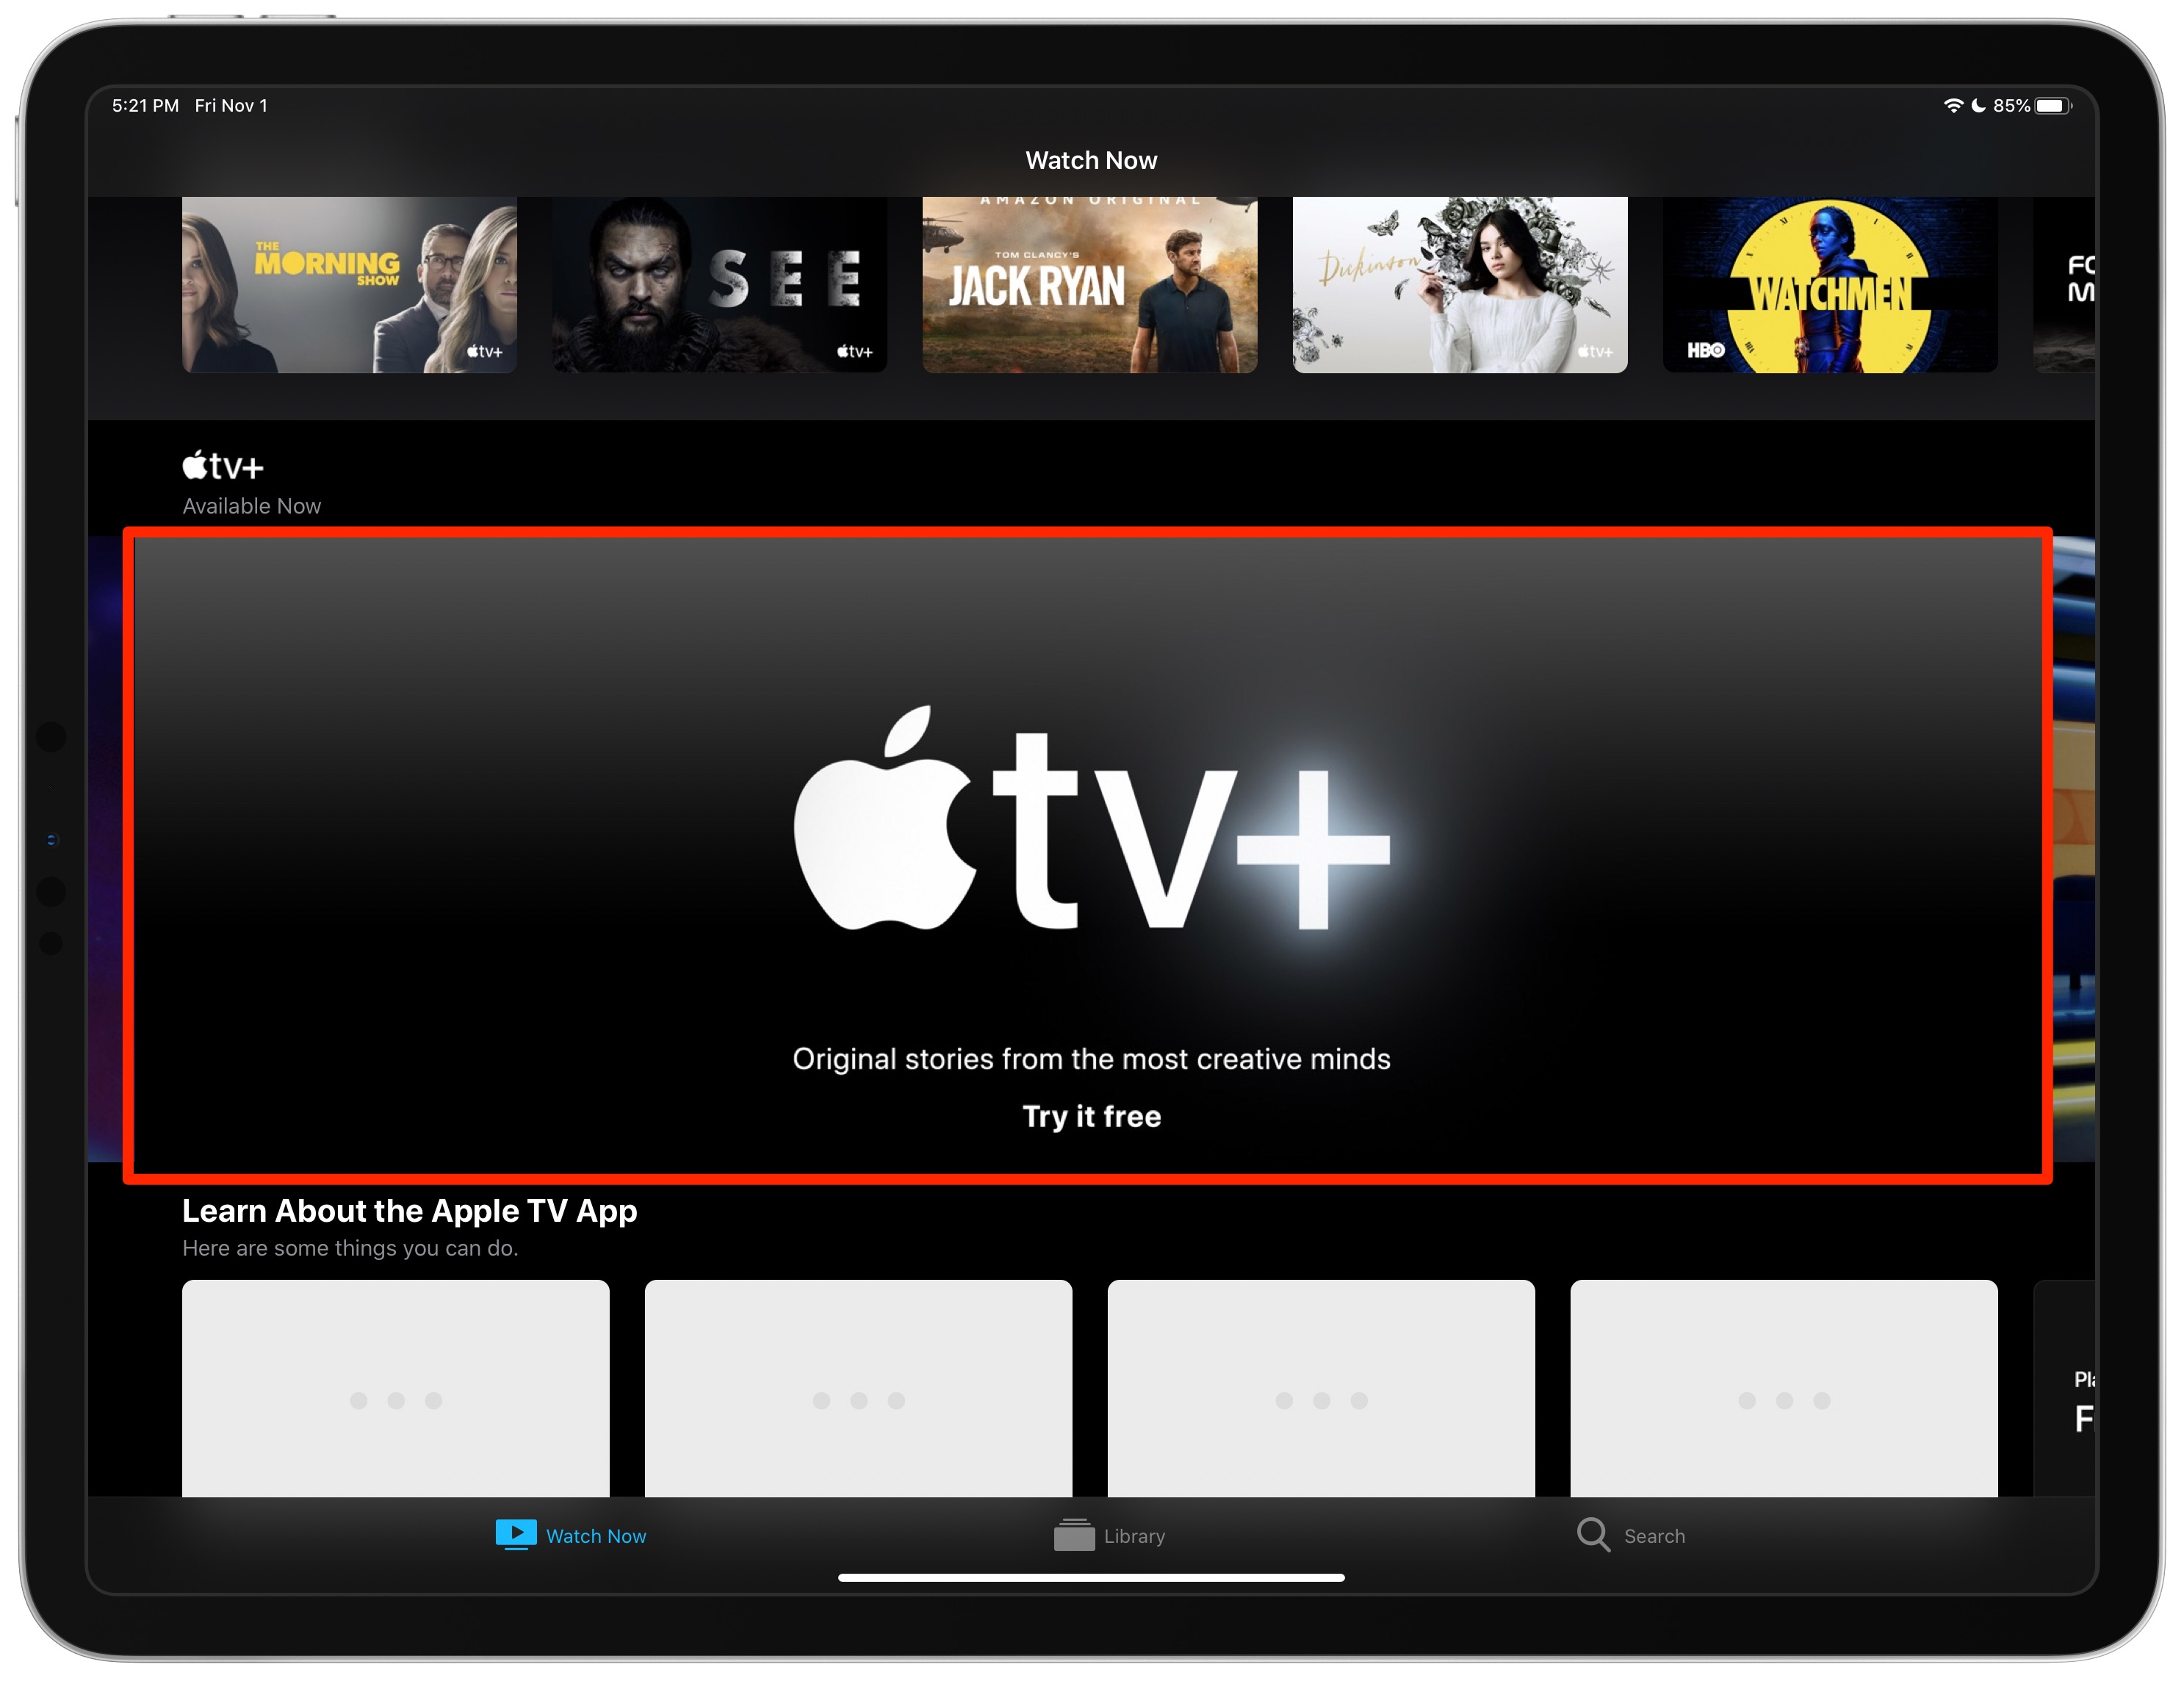 Free Apple TV+ trial